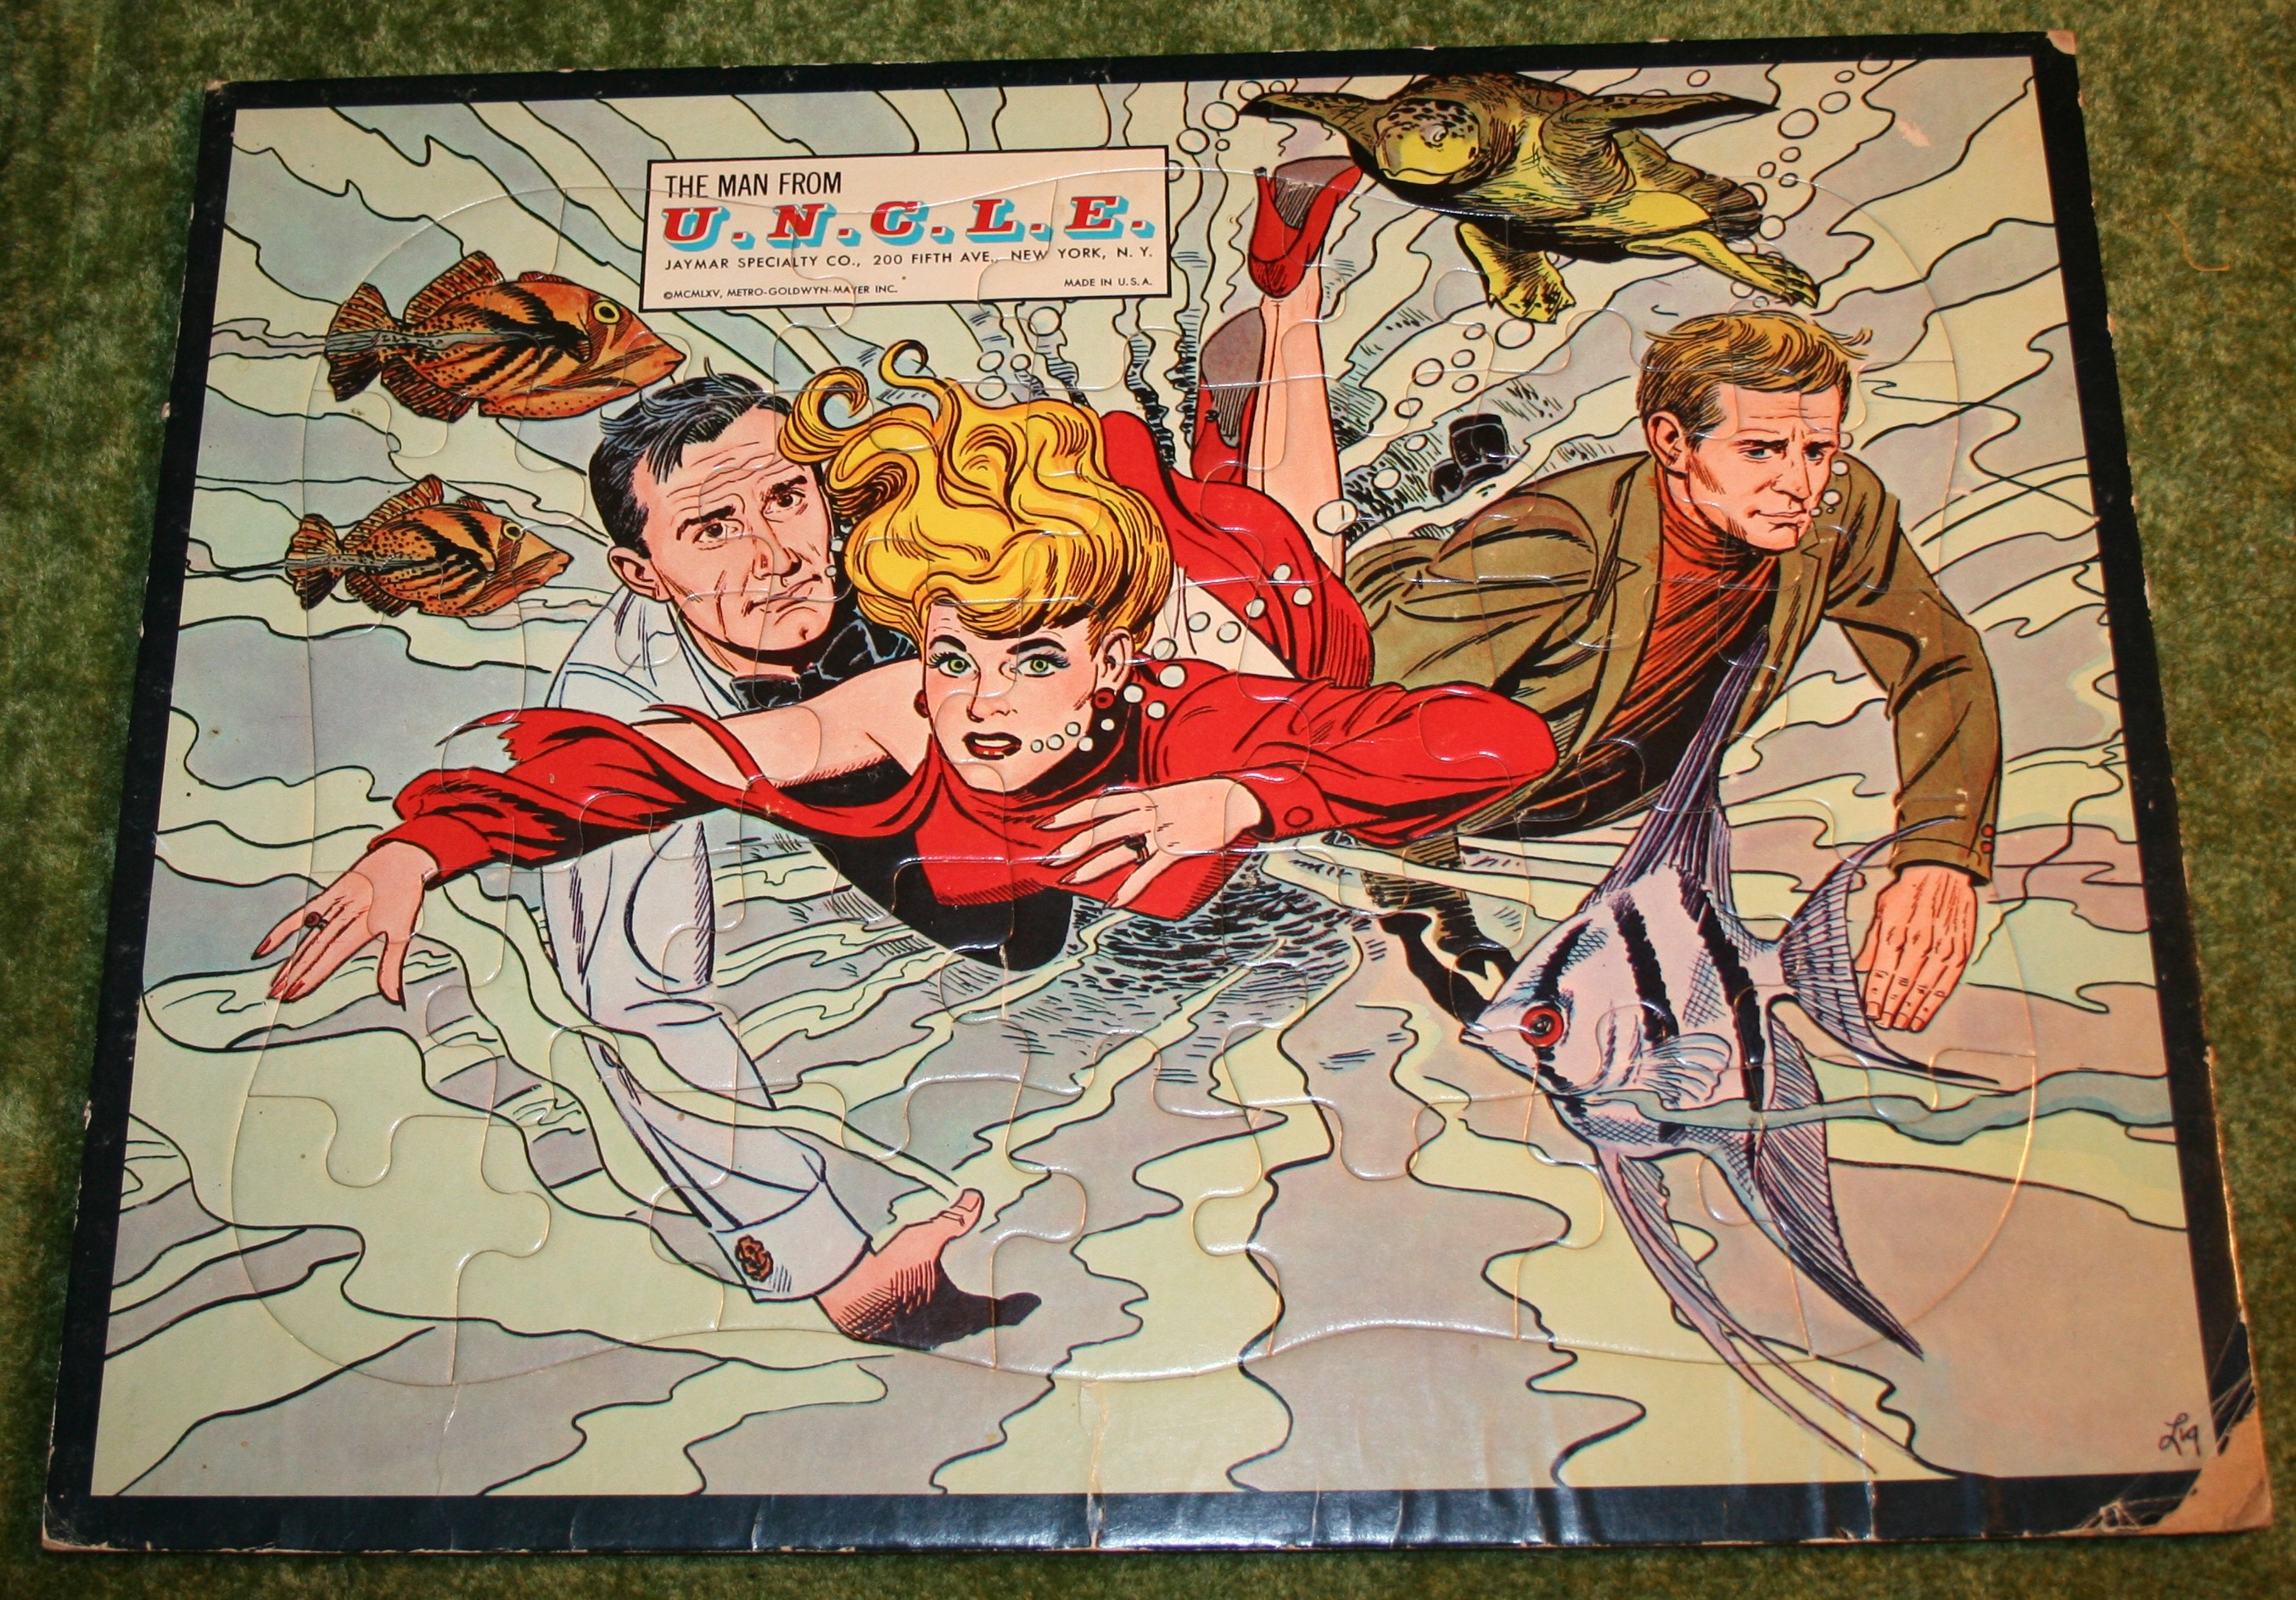 U.N.C.L.E. Frame Tray Puzzle (Swimming)